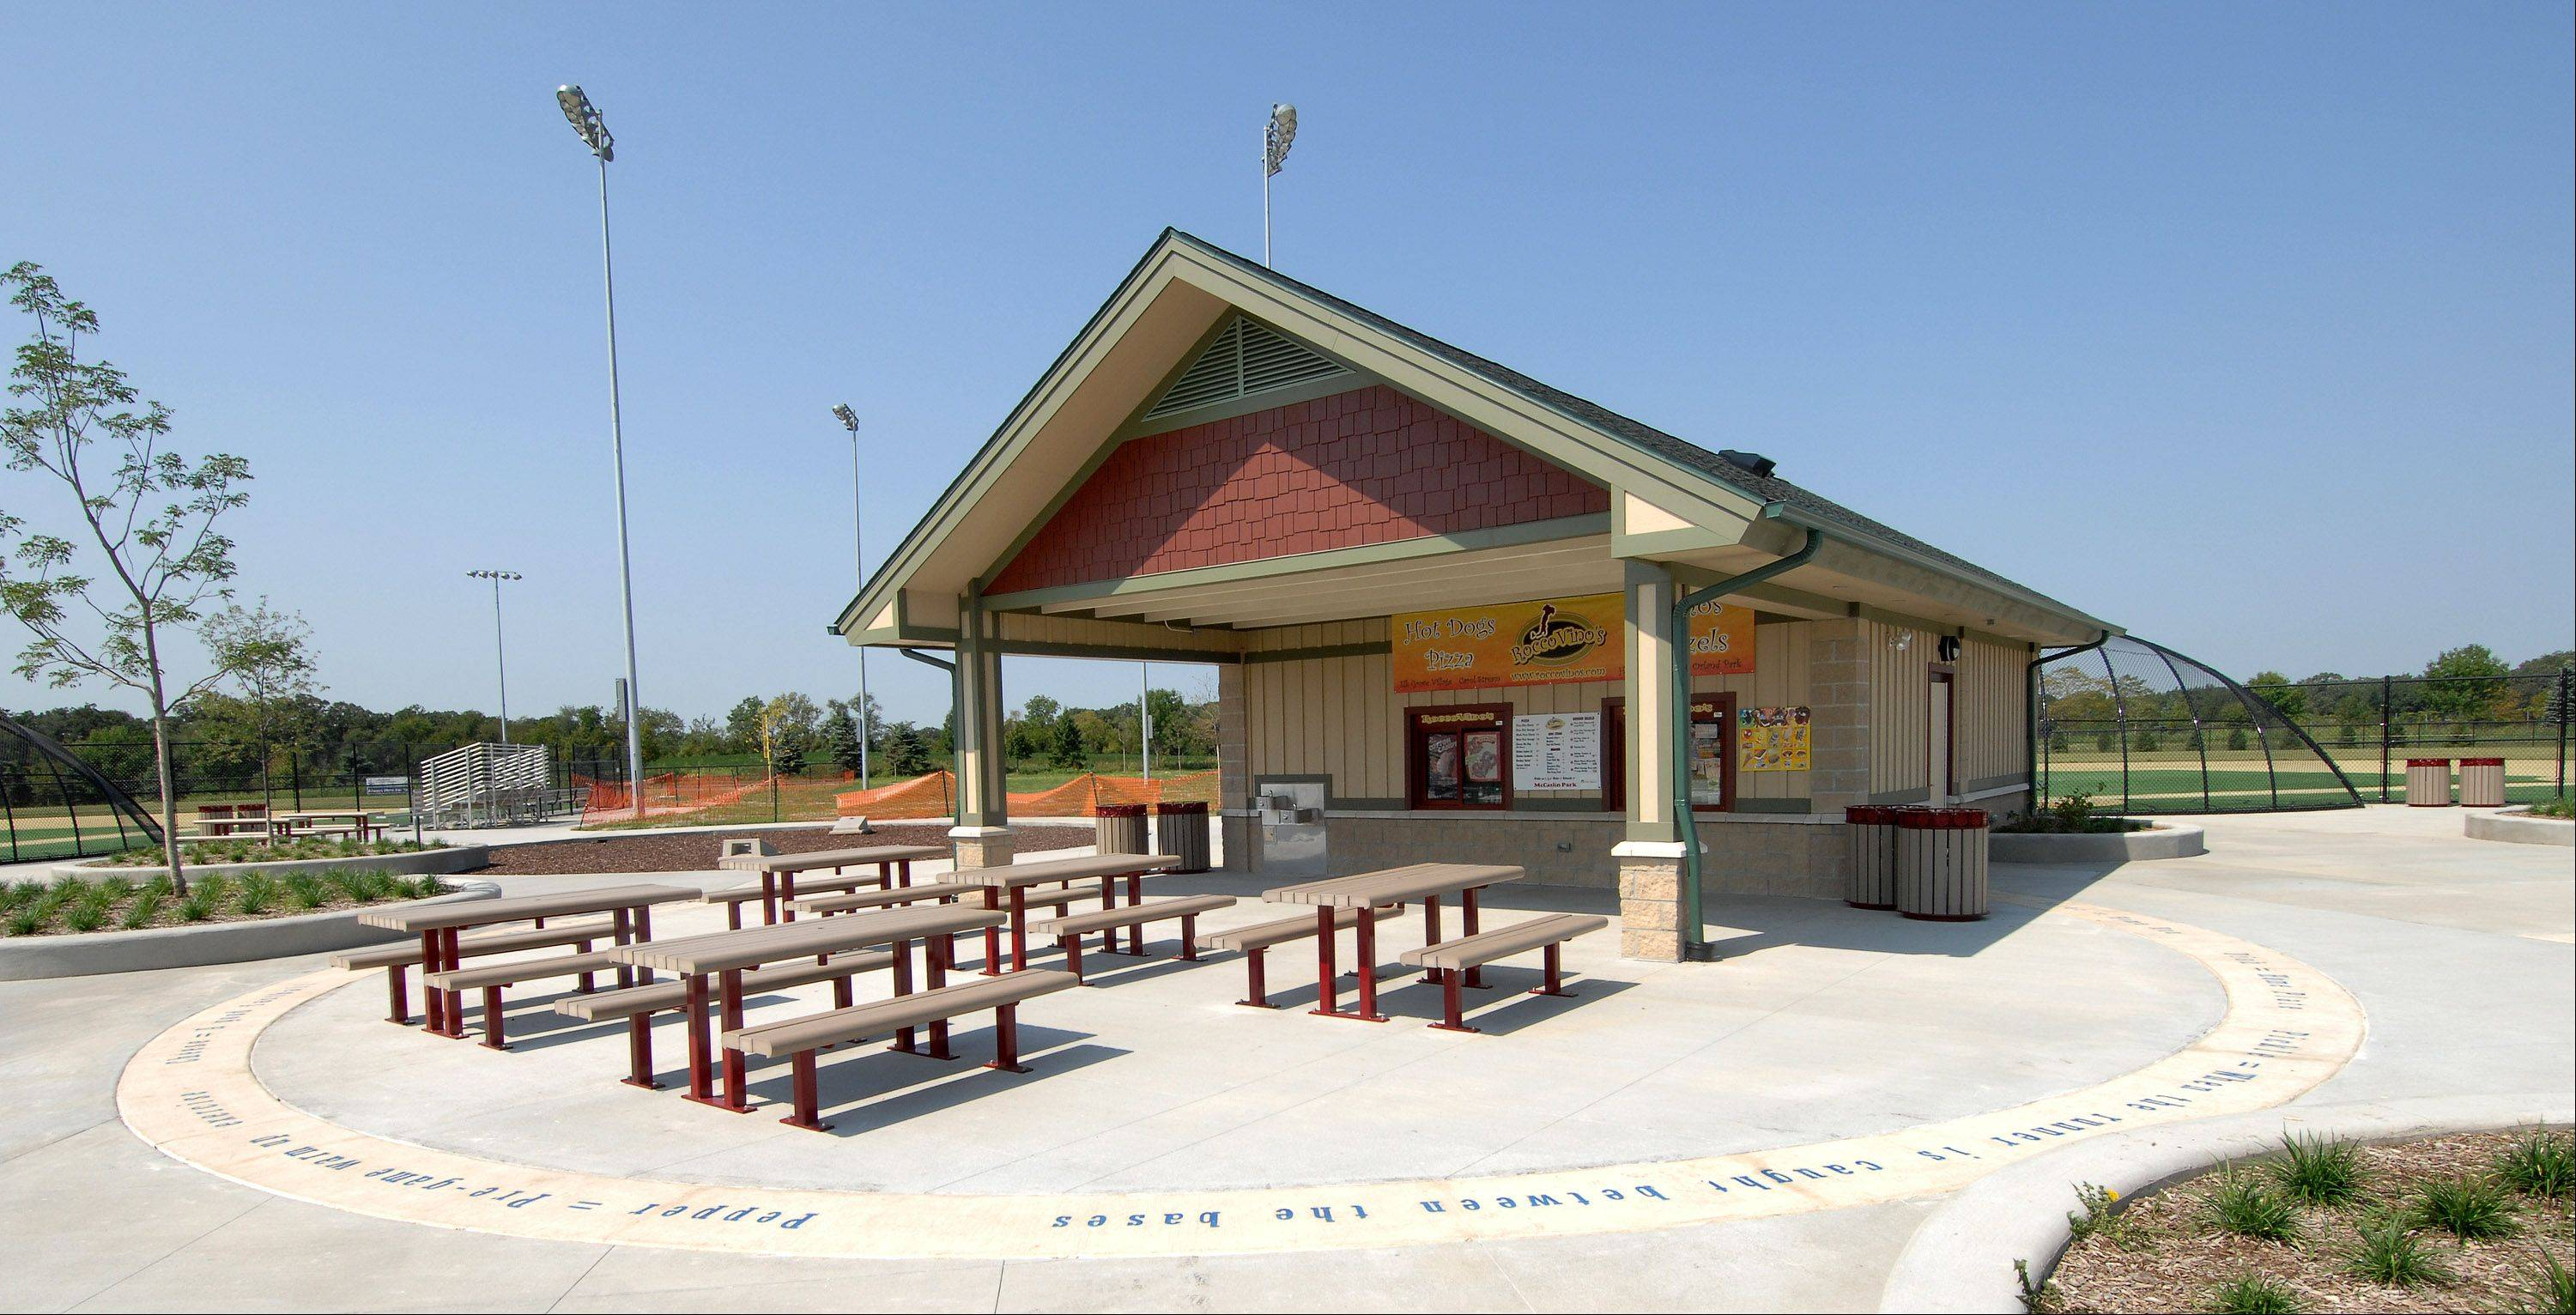 The Carol Stream Park District might put alcohol on the menu at the McCaslin Park concession stand. A trial run is scheduled for an adult softball tournament Oct. 20 and 21.